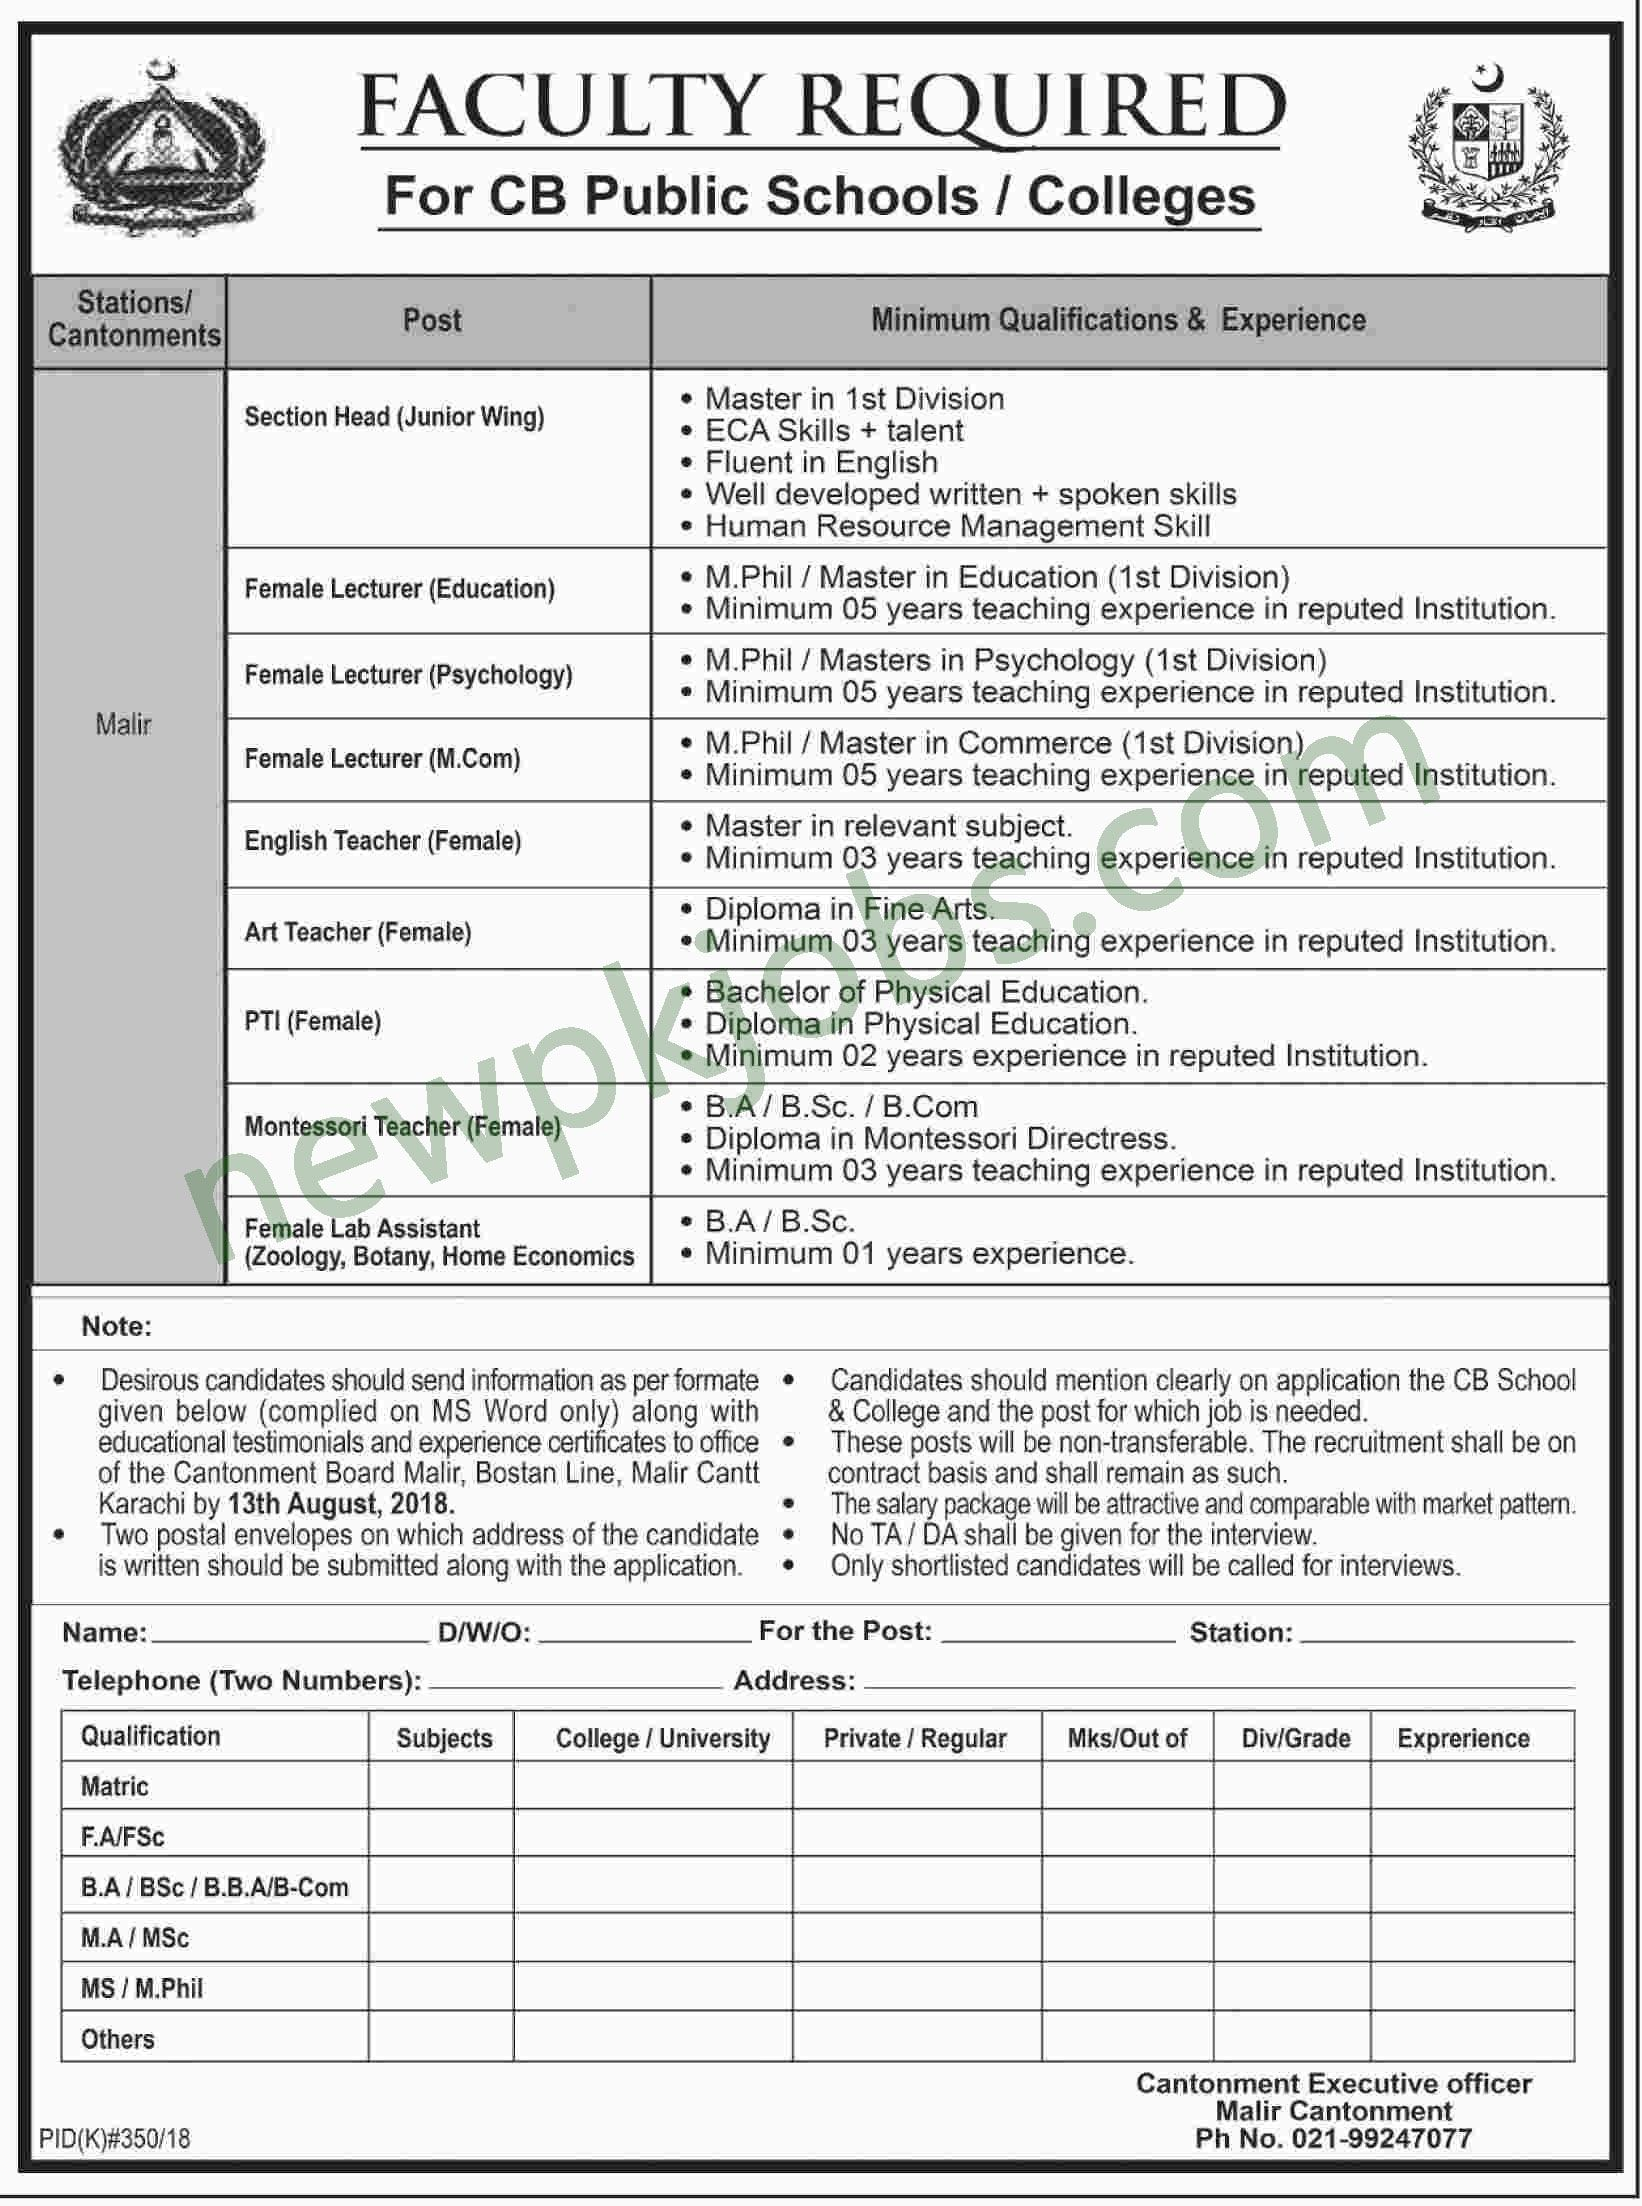 Teaching and Non Teaching Jobs in CB Public Schools and